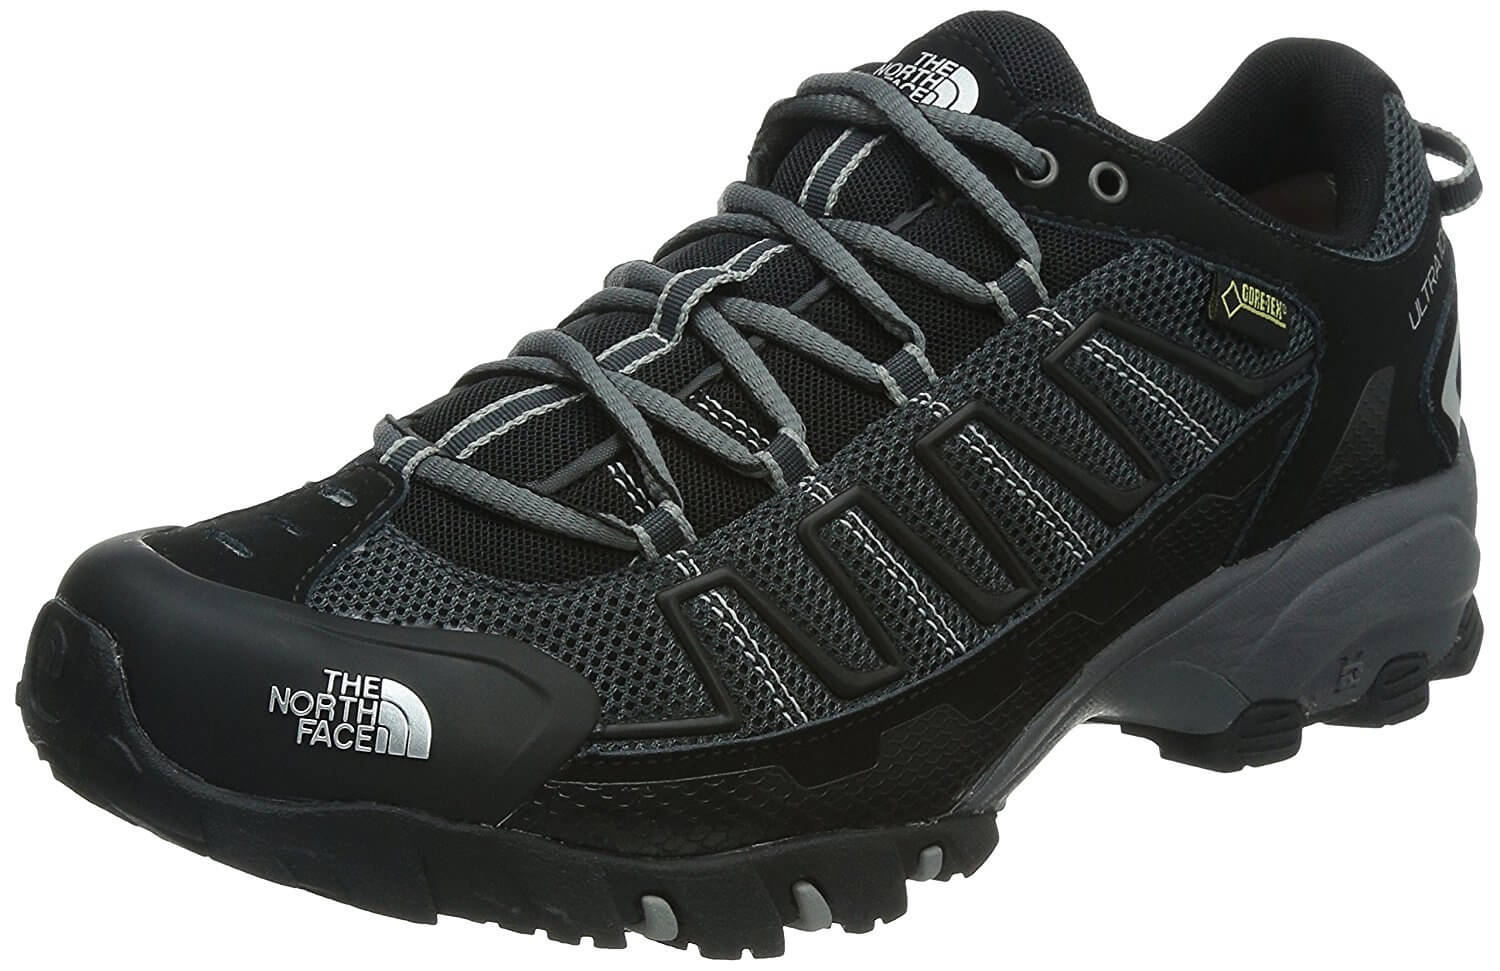 c54274d0b08 The North Face Ultra 110 GTX - Buy or Not in Mar 2019